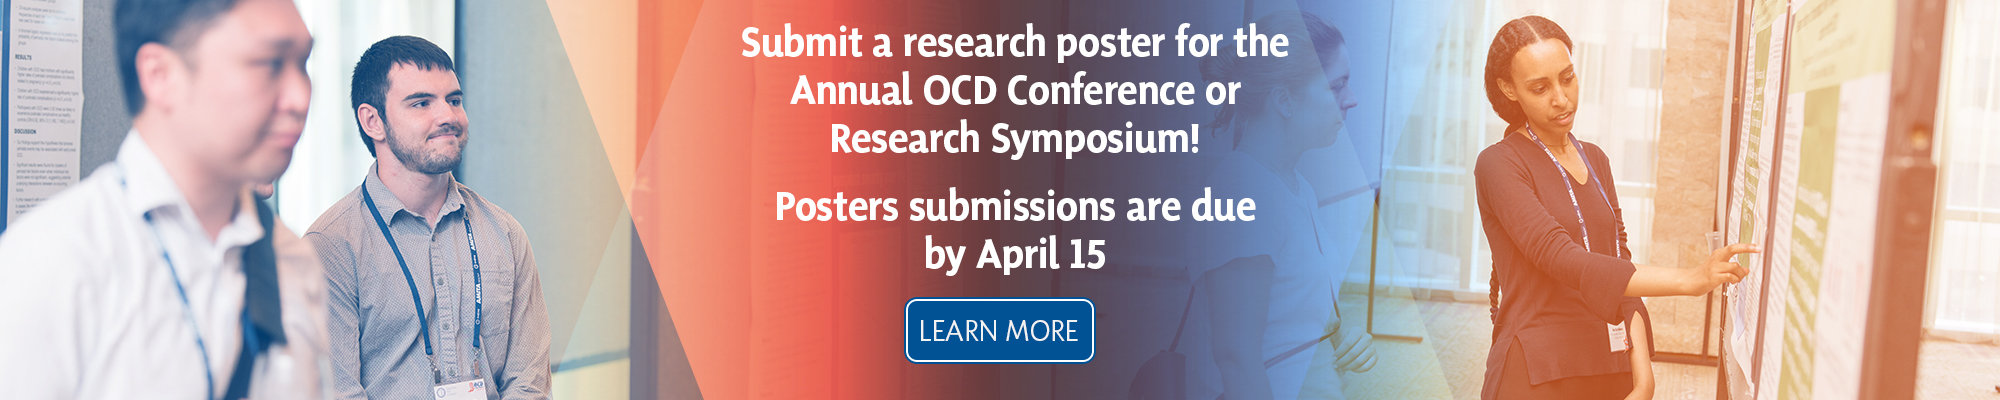 Submit a research poster for the 27th Annual OCD Conference. July 31-August 2, 2020 in Seattle, WA